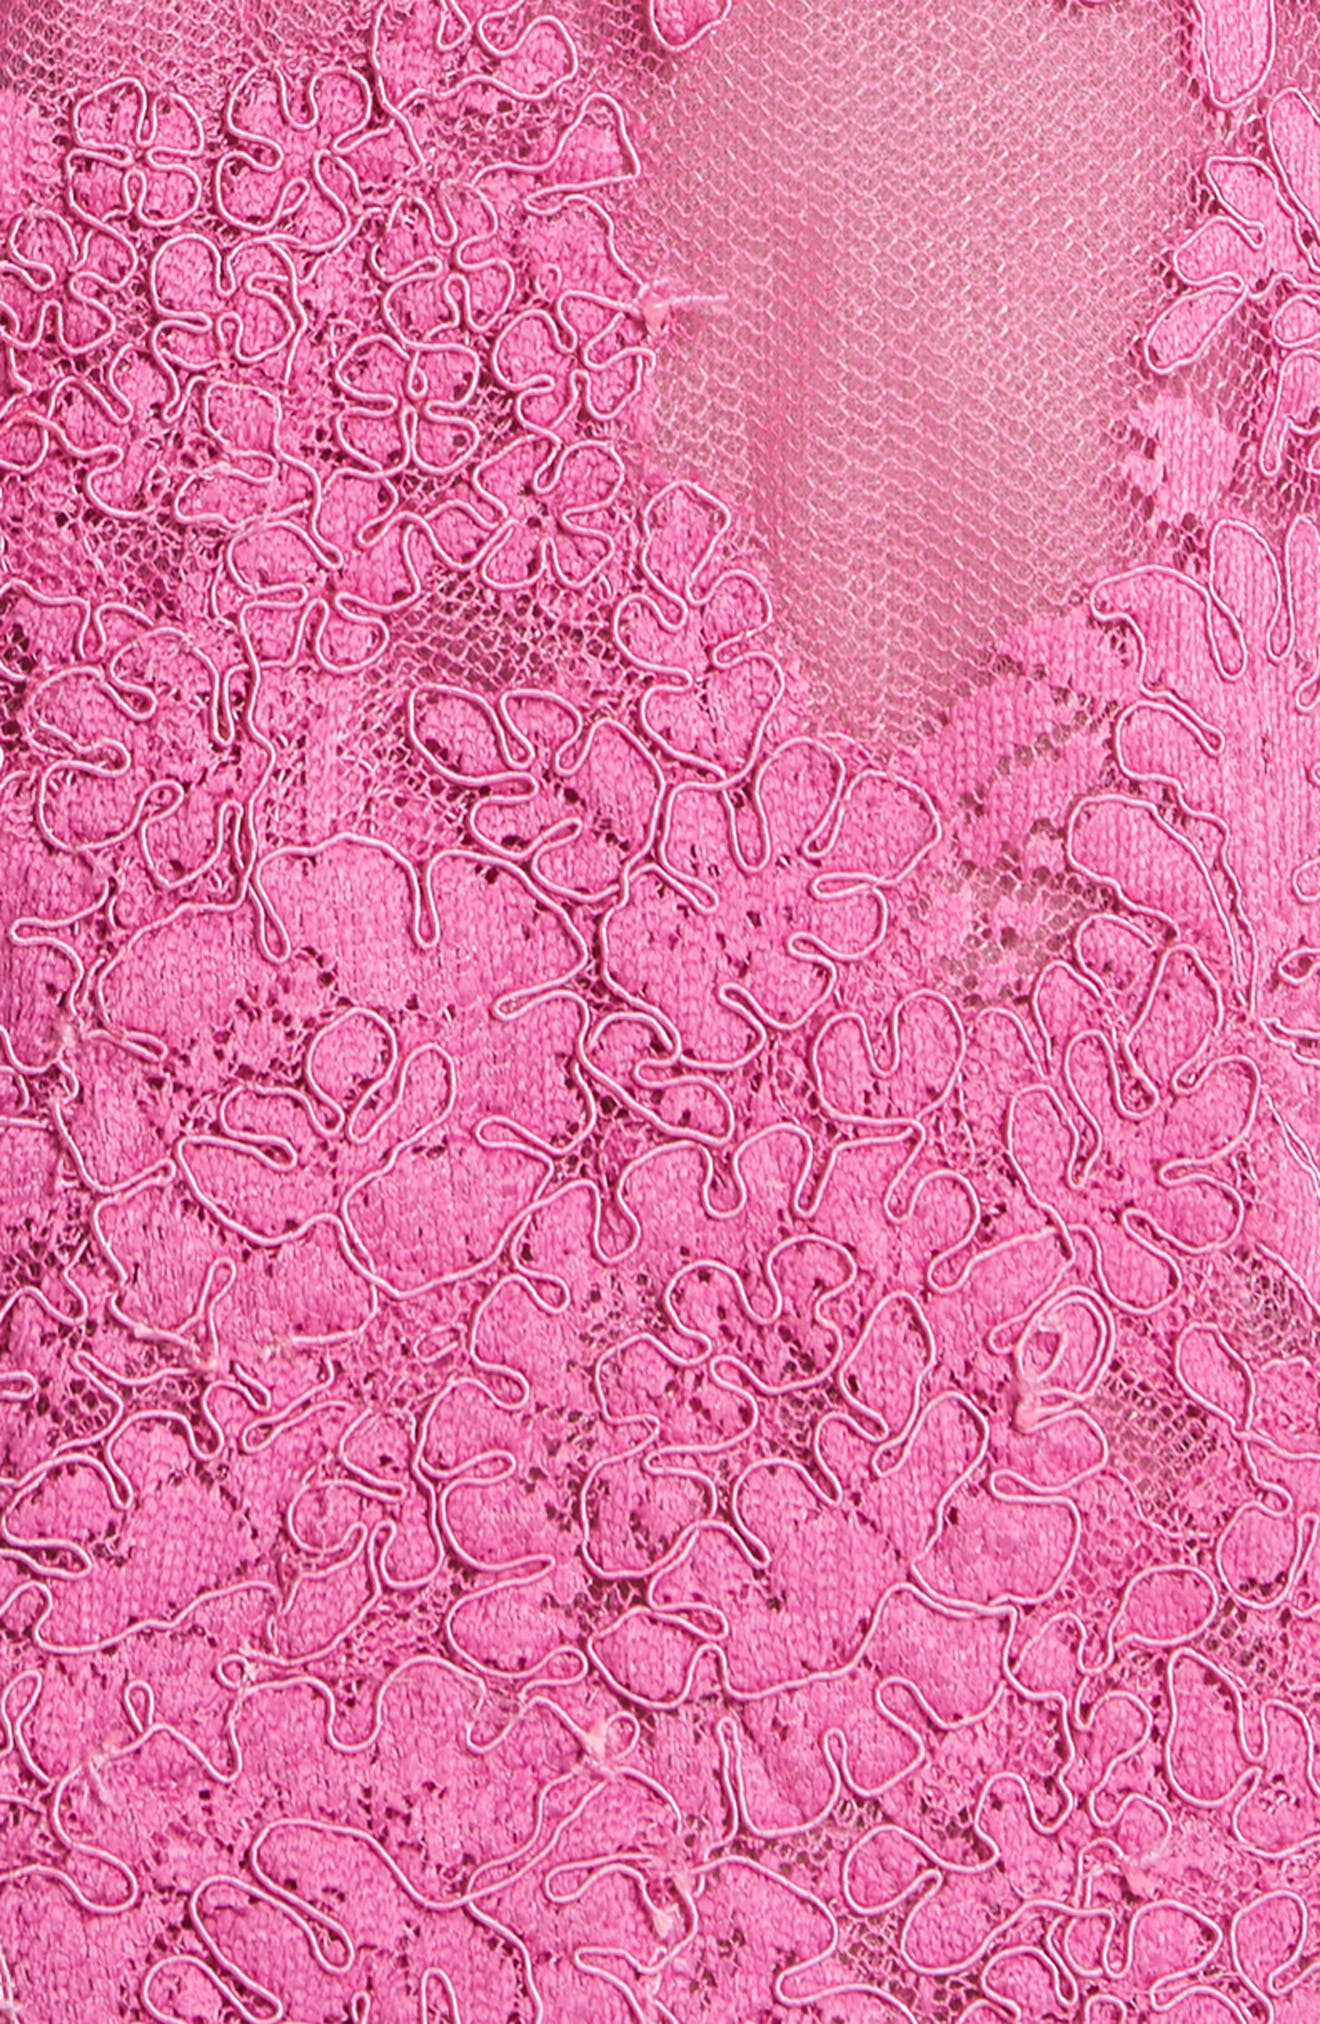 Off the Shoulder Illusion Ruffle Sleeve Lace Dress,                             Alternate thumbnail 5, color,                             950